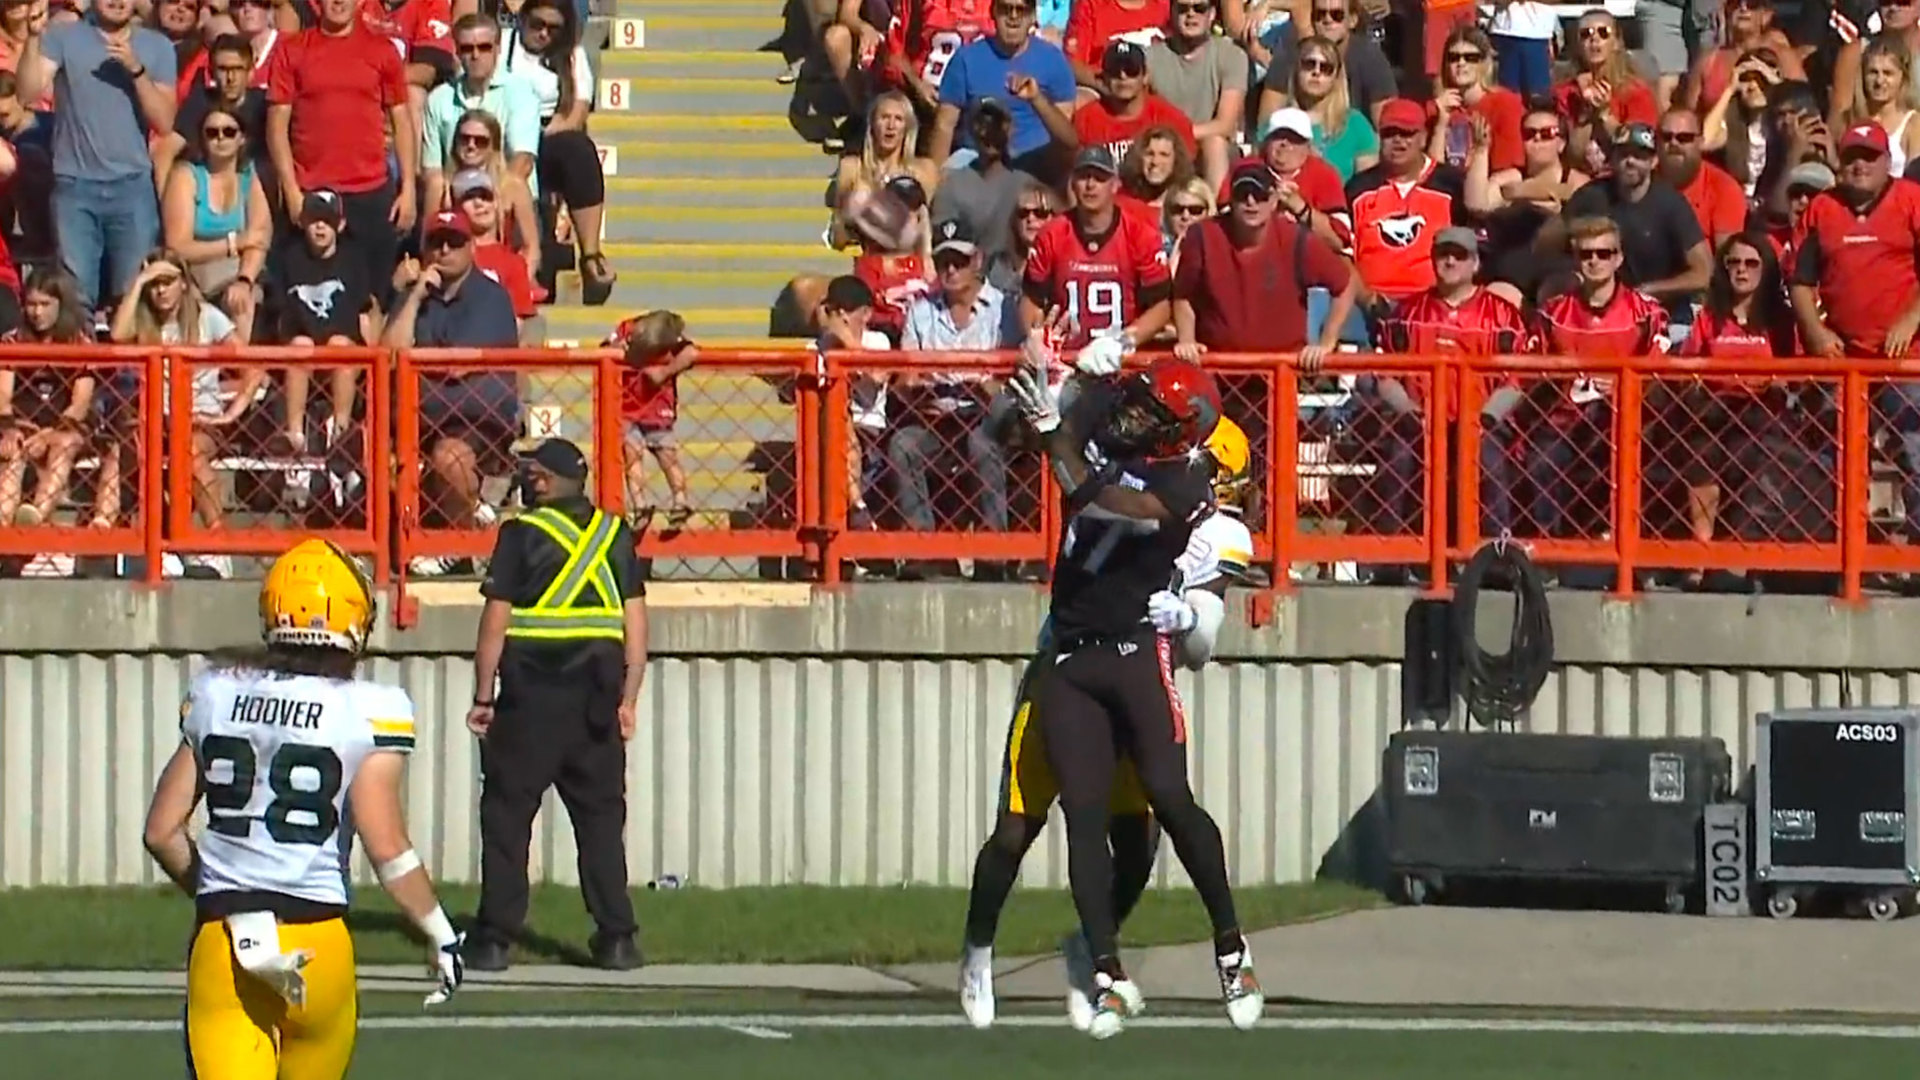 Ambles' first TD of the season puts Stamps in front